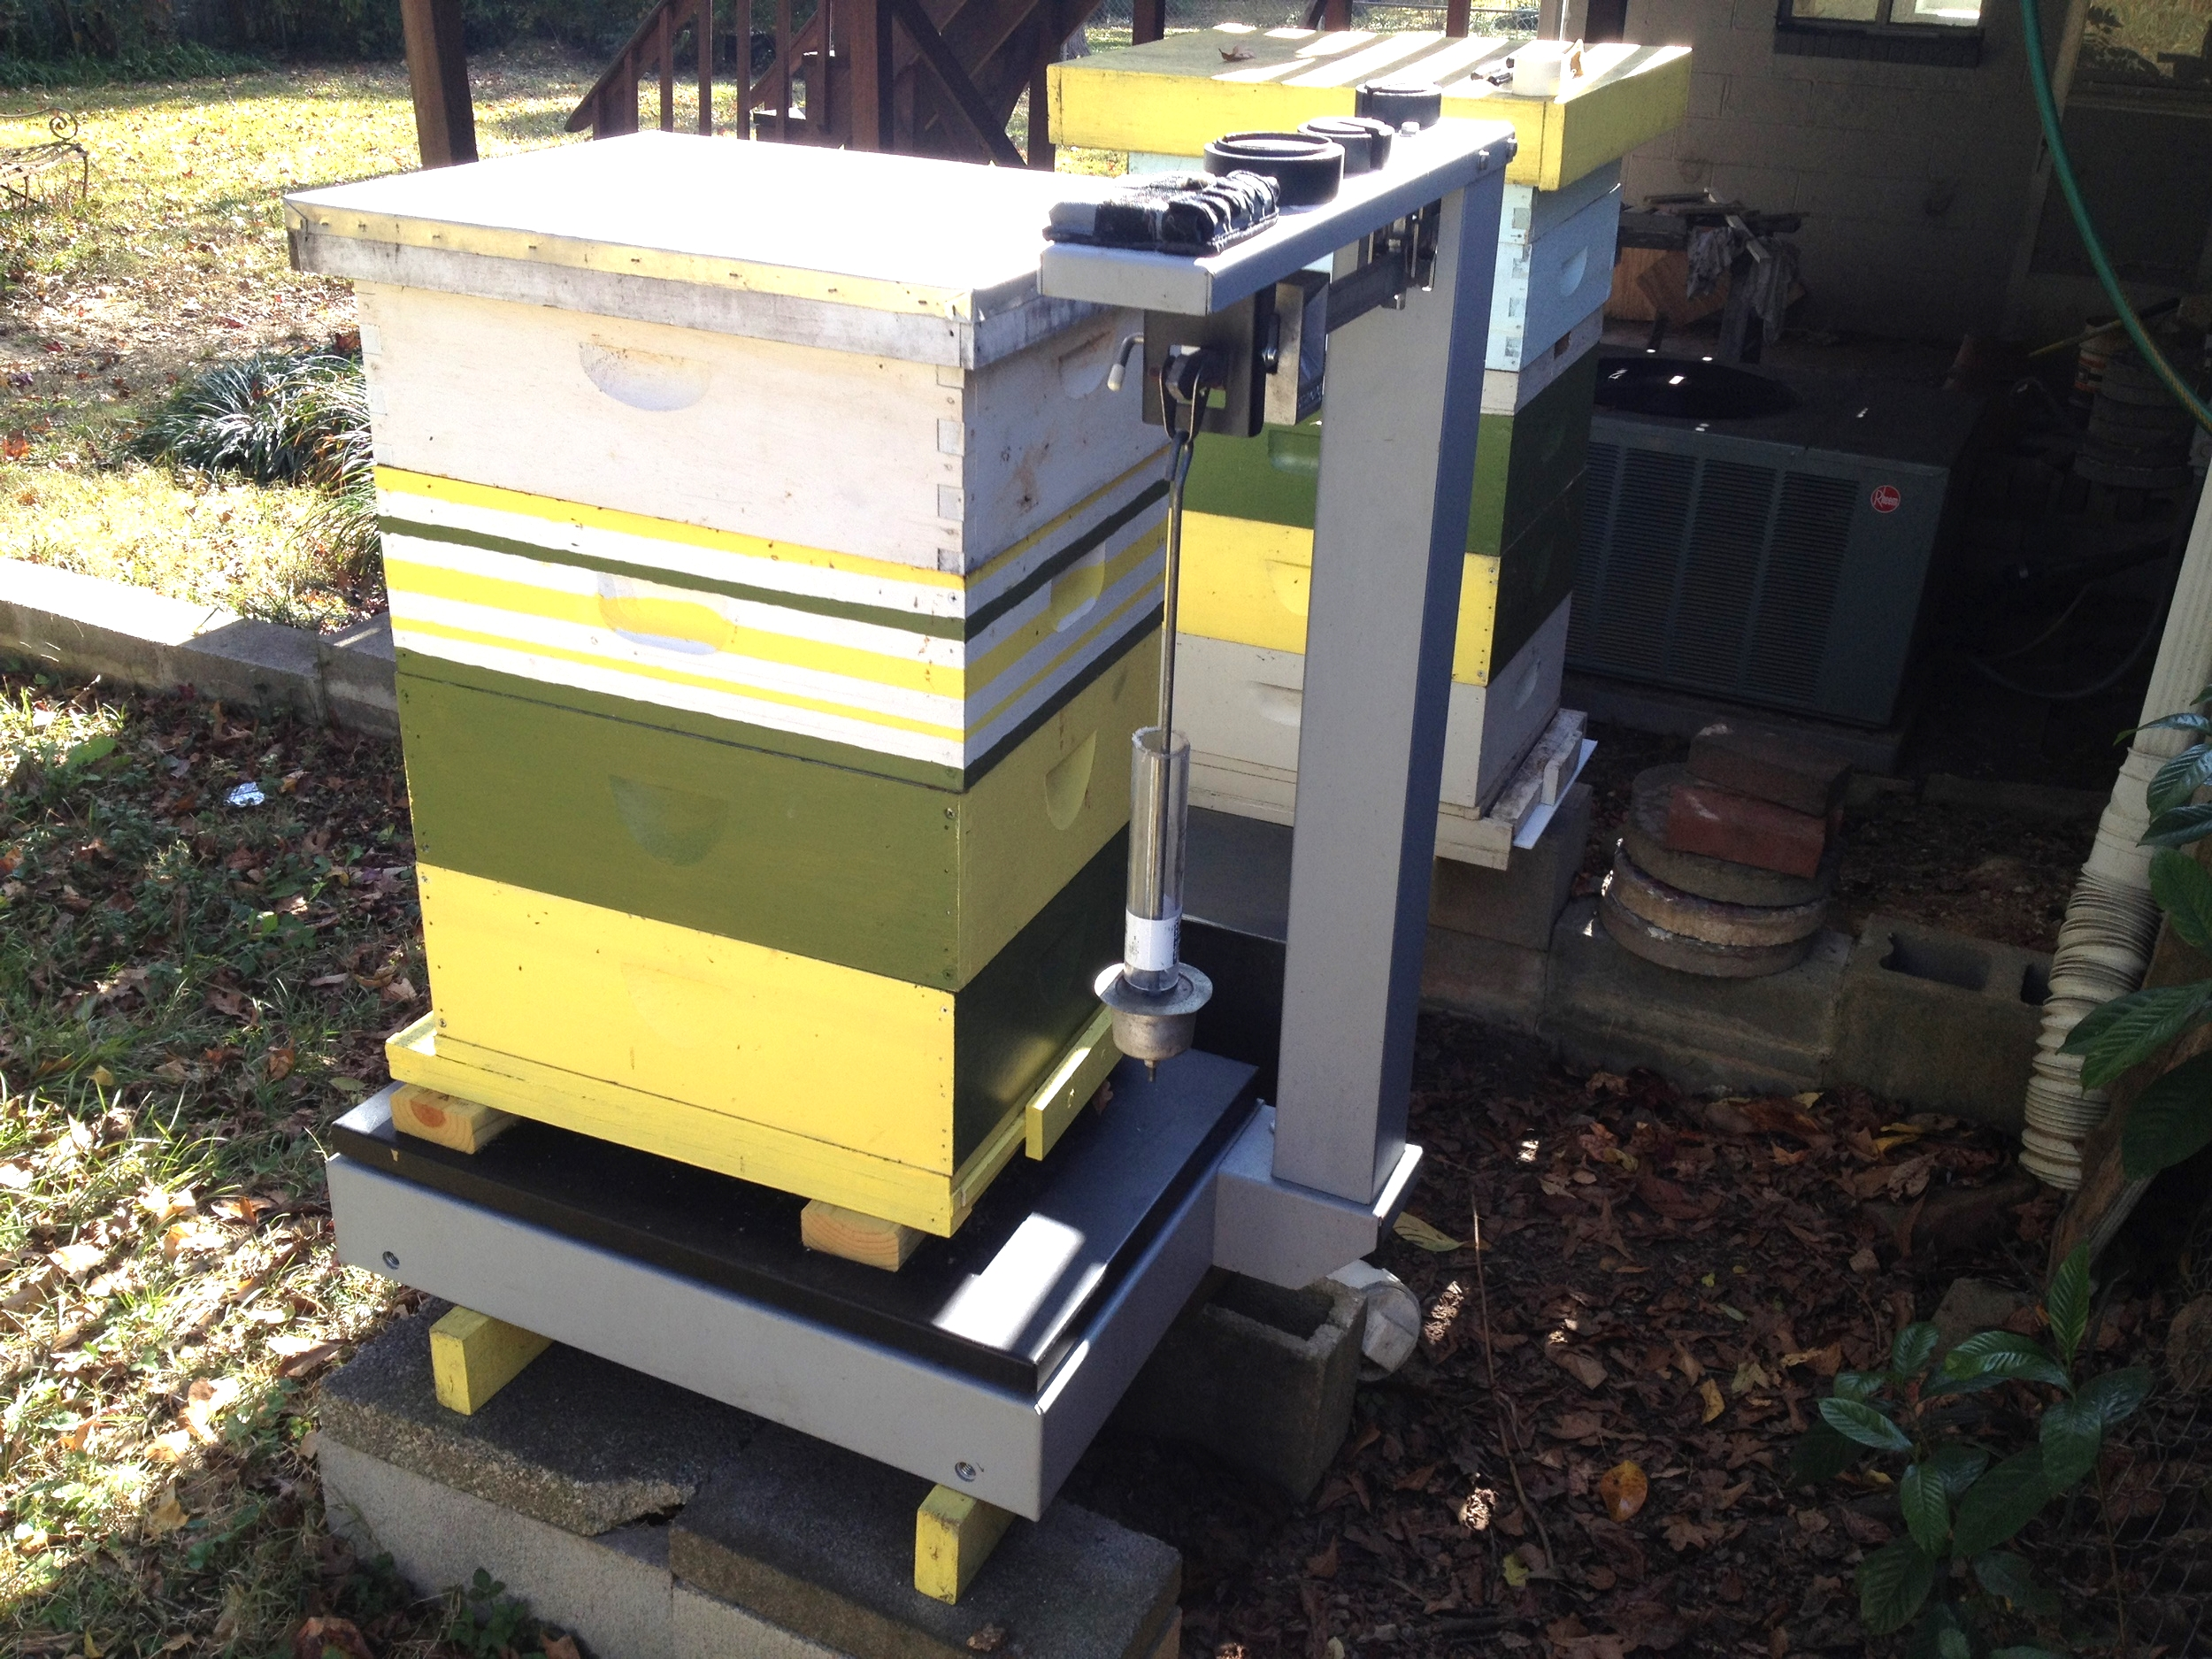 Simple hive scale setup on backyard langstroth hive